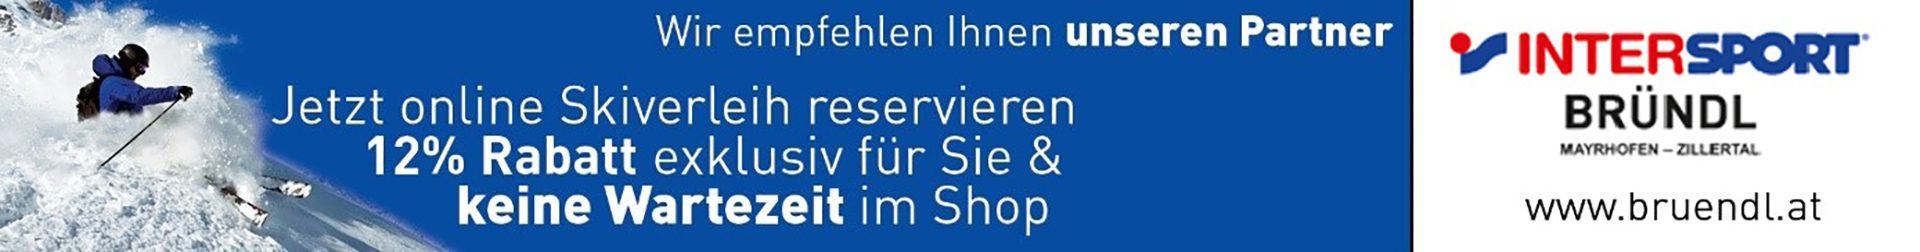 Intersport Bruendl